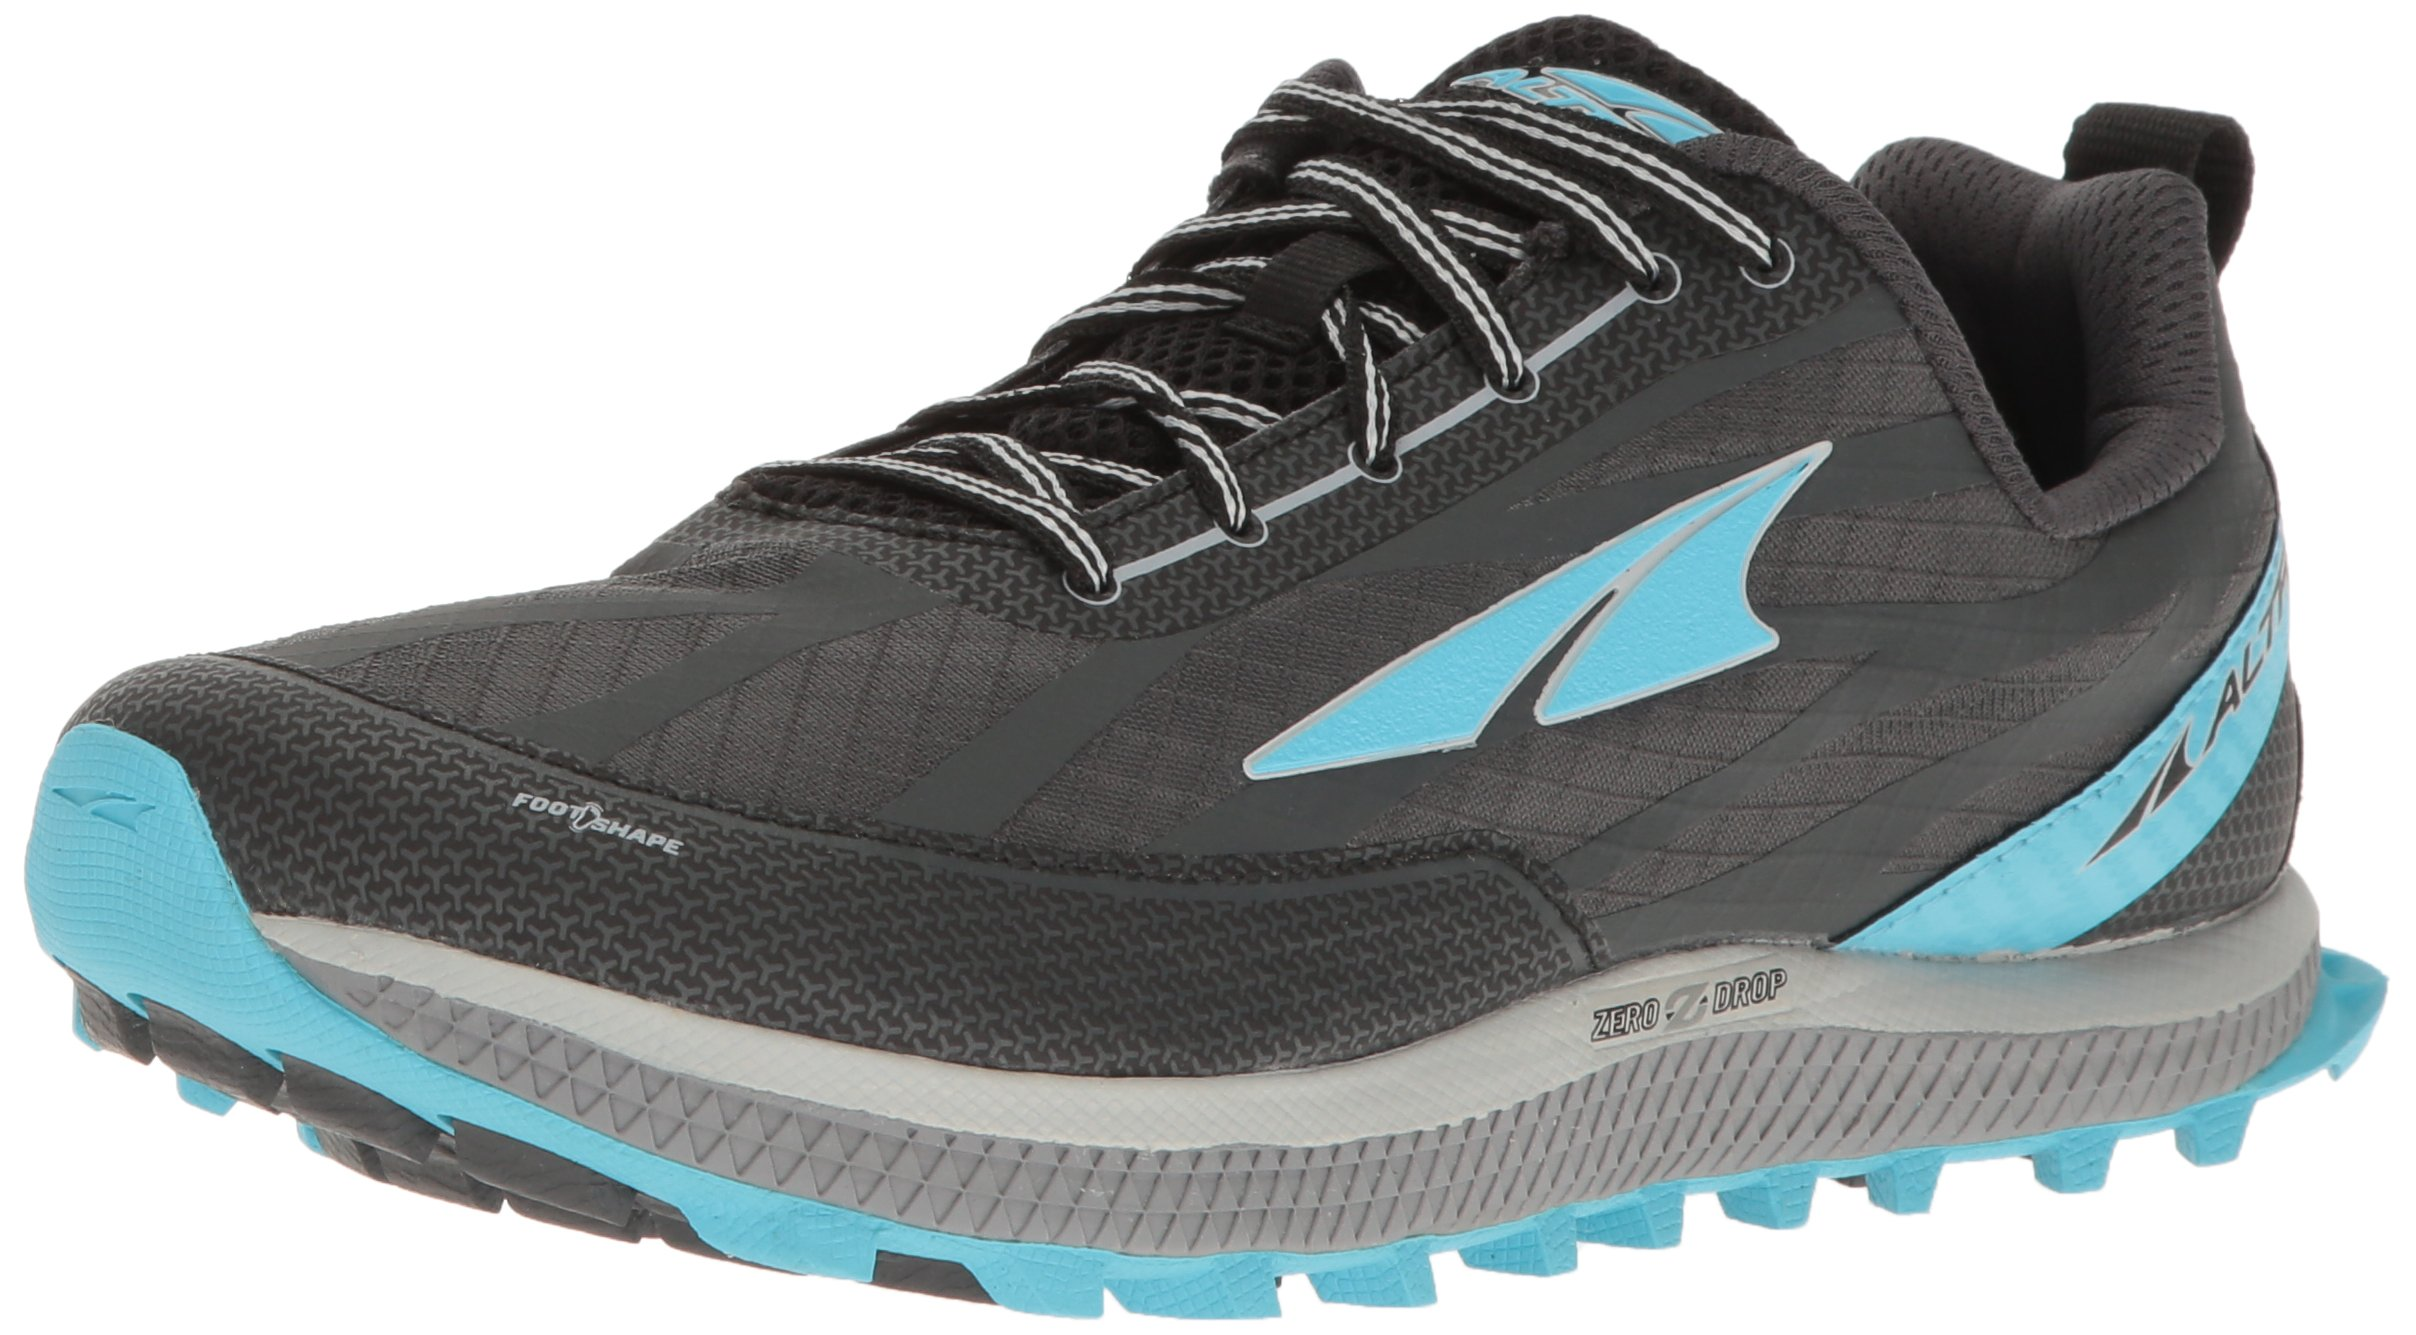 Altra Women's Superior 3 Running Shoe, Charcoal/Blue, 9.5 M US